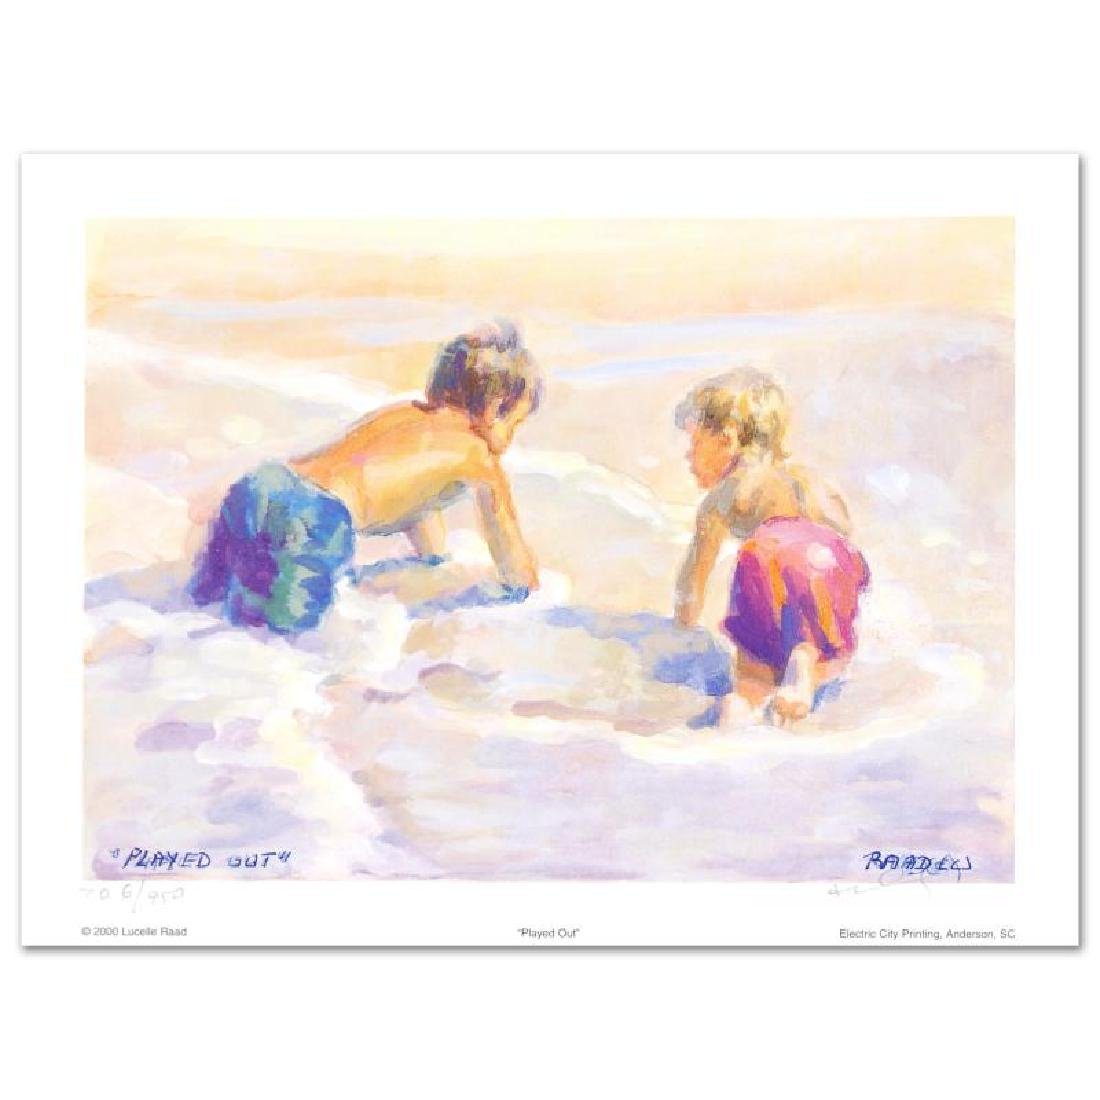 """""""Played Out"""" Limited Edition Lithograph by Lucelle"""